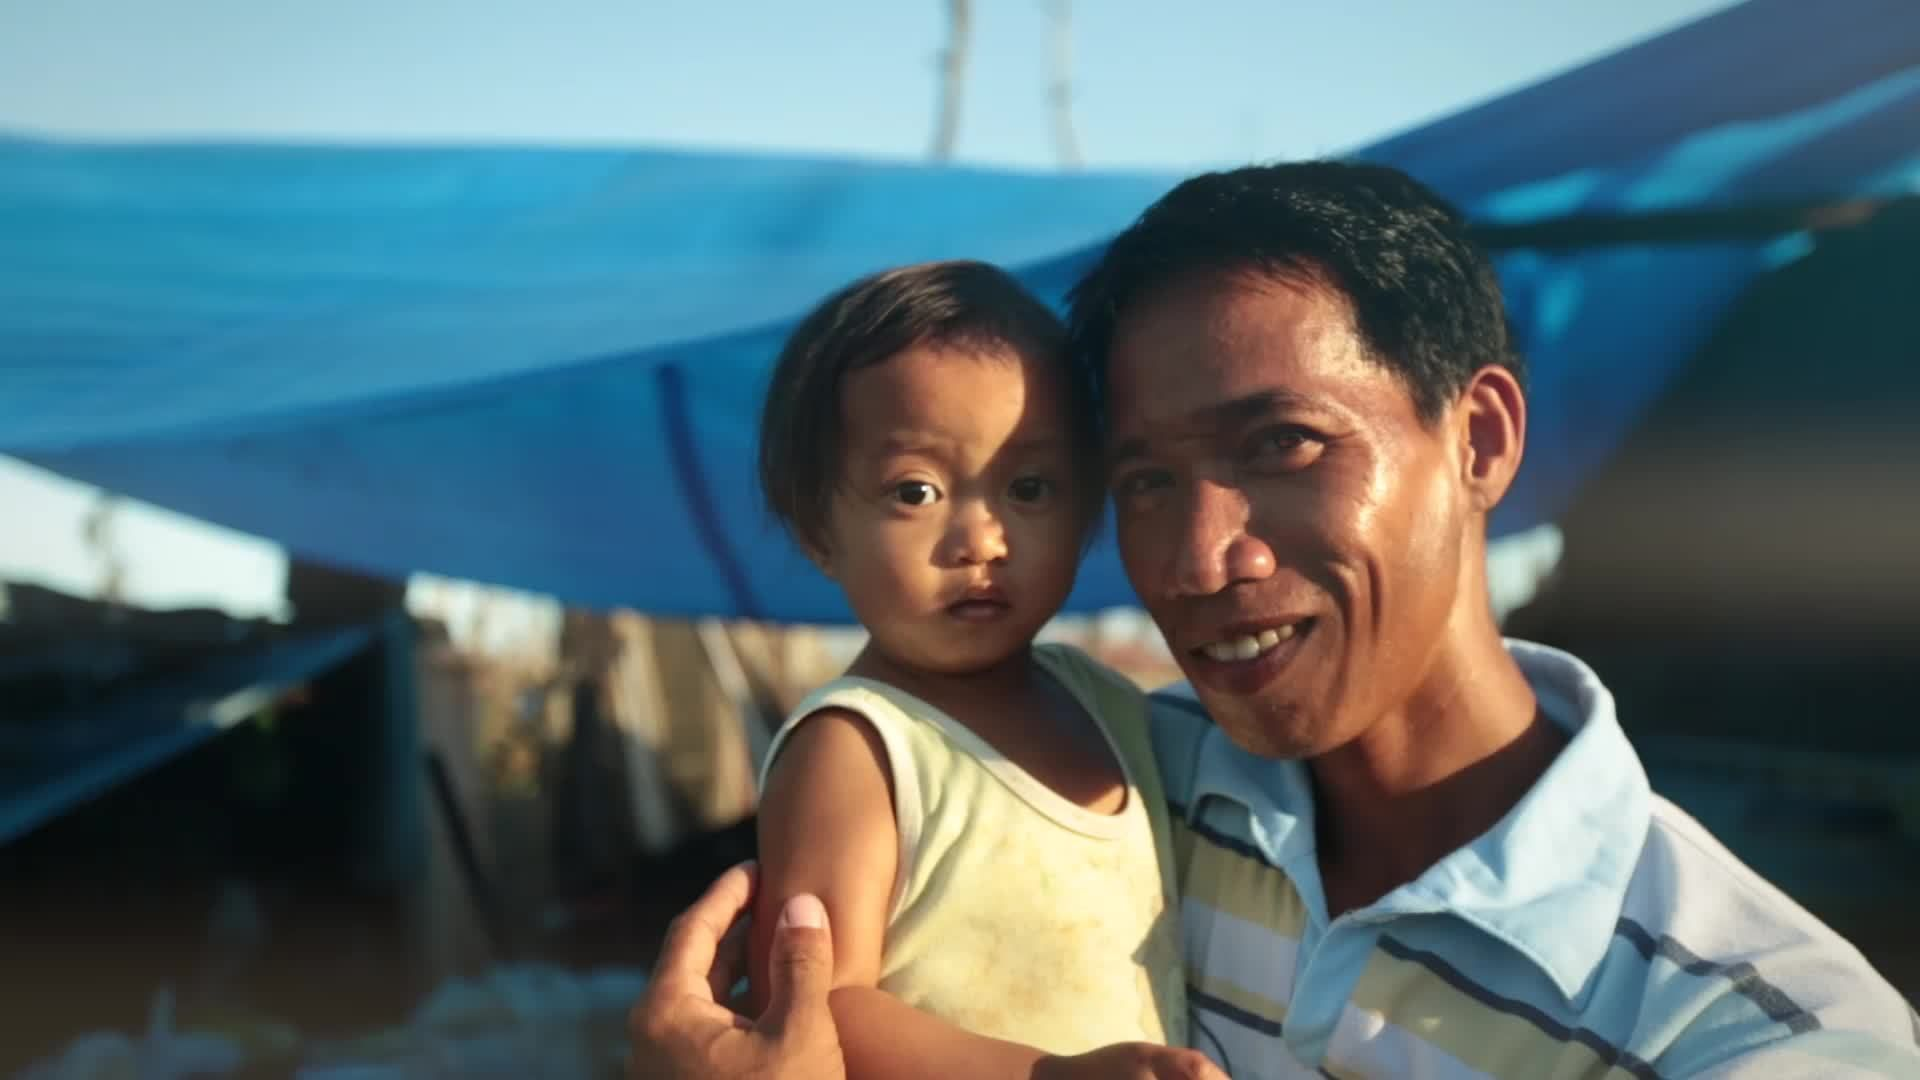 Samaritan's purse has already distributed several million square feet of plastic sheeting to survivors of Typhoon Haiyan in the central Philippines, and approximately 8 million more square feet is on its way to hard-hit areas.